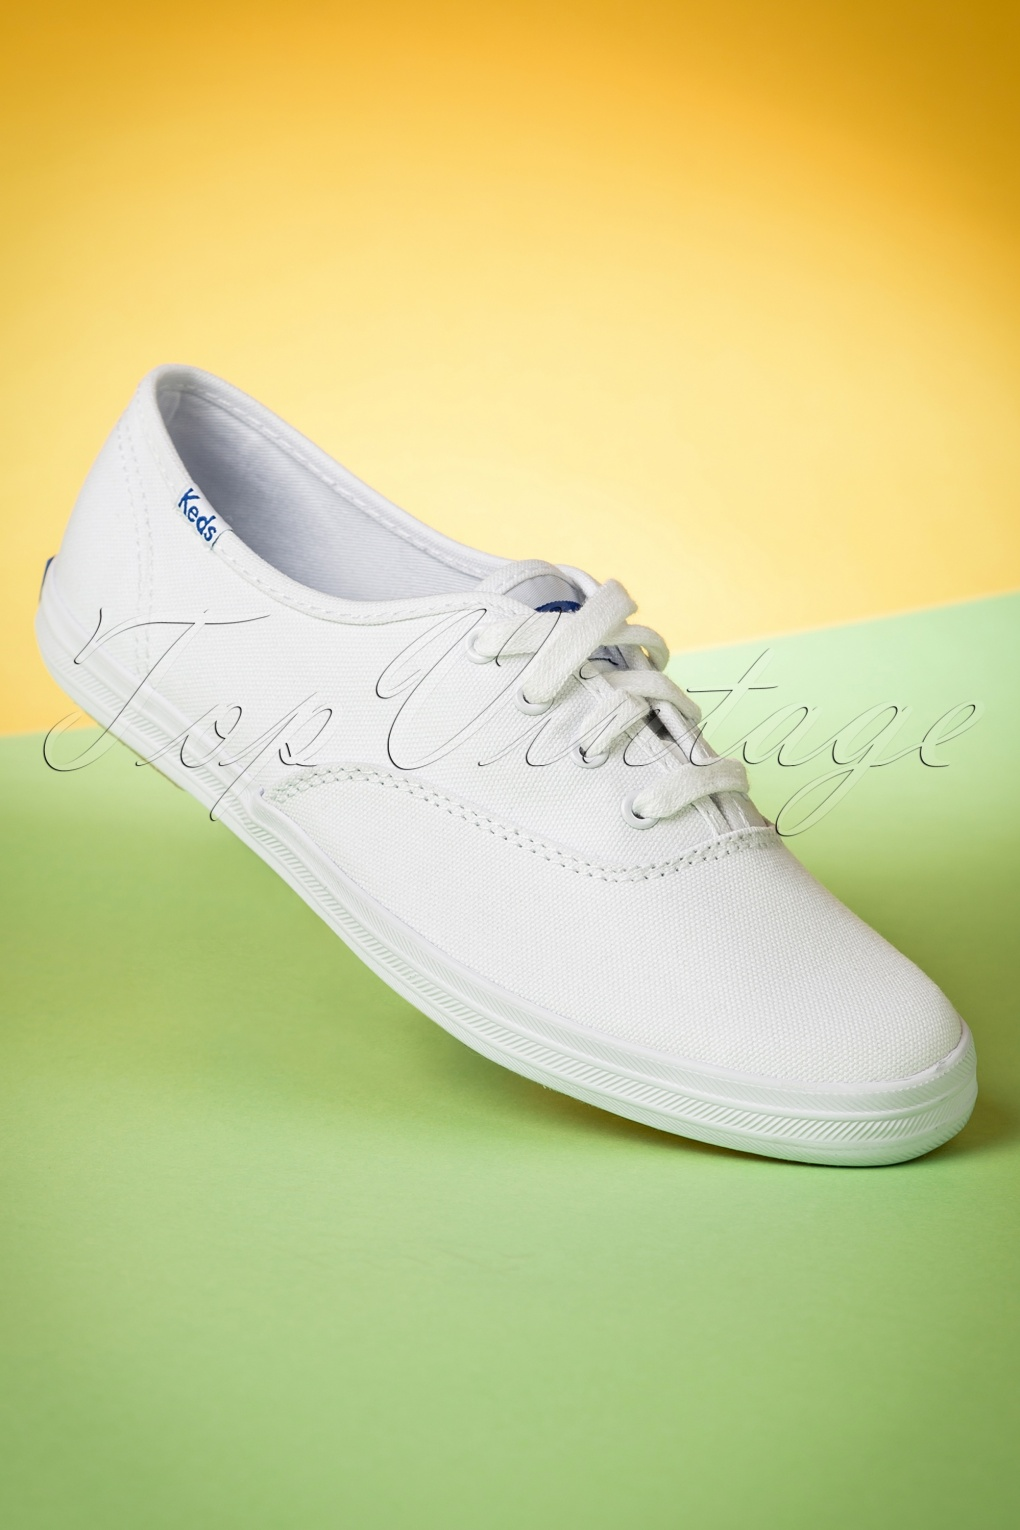 Swing Dance Shoes- Vintage, Lindy Hop, Tap, Ballroom 50s Champion Core Text Sneakers in White £53.24 AT vintagedancer.com